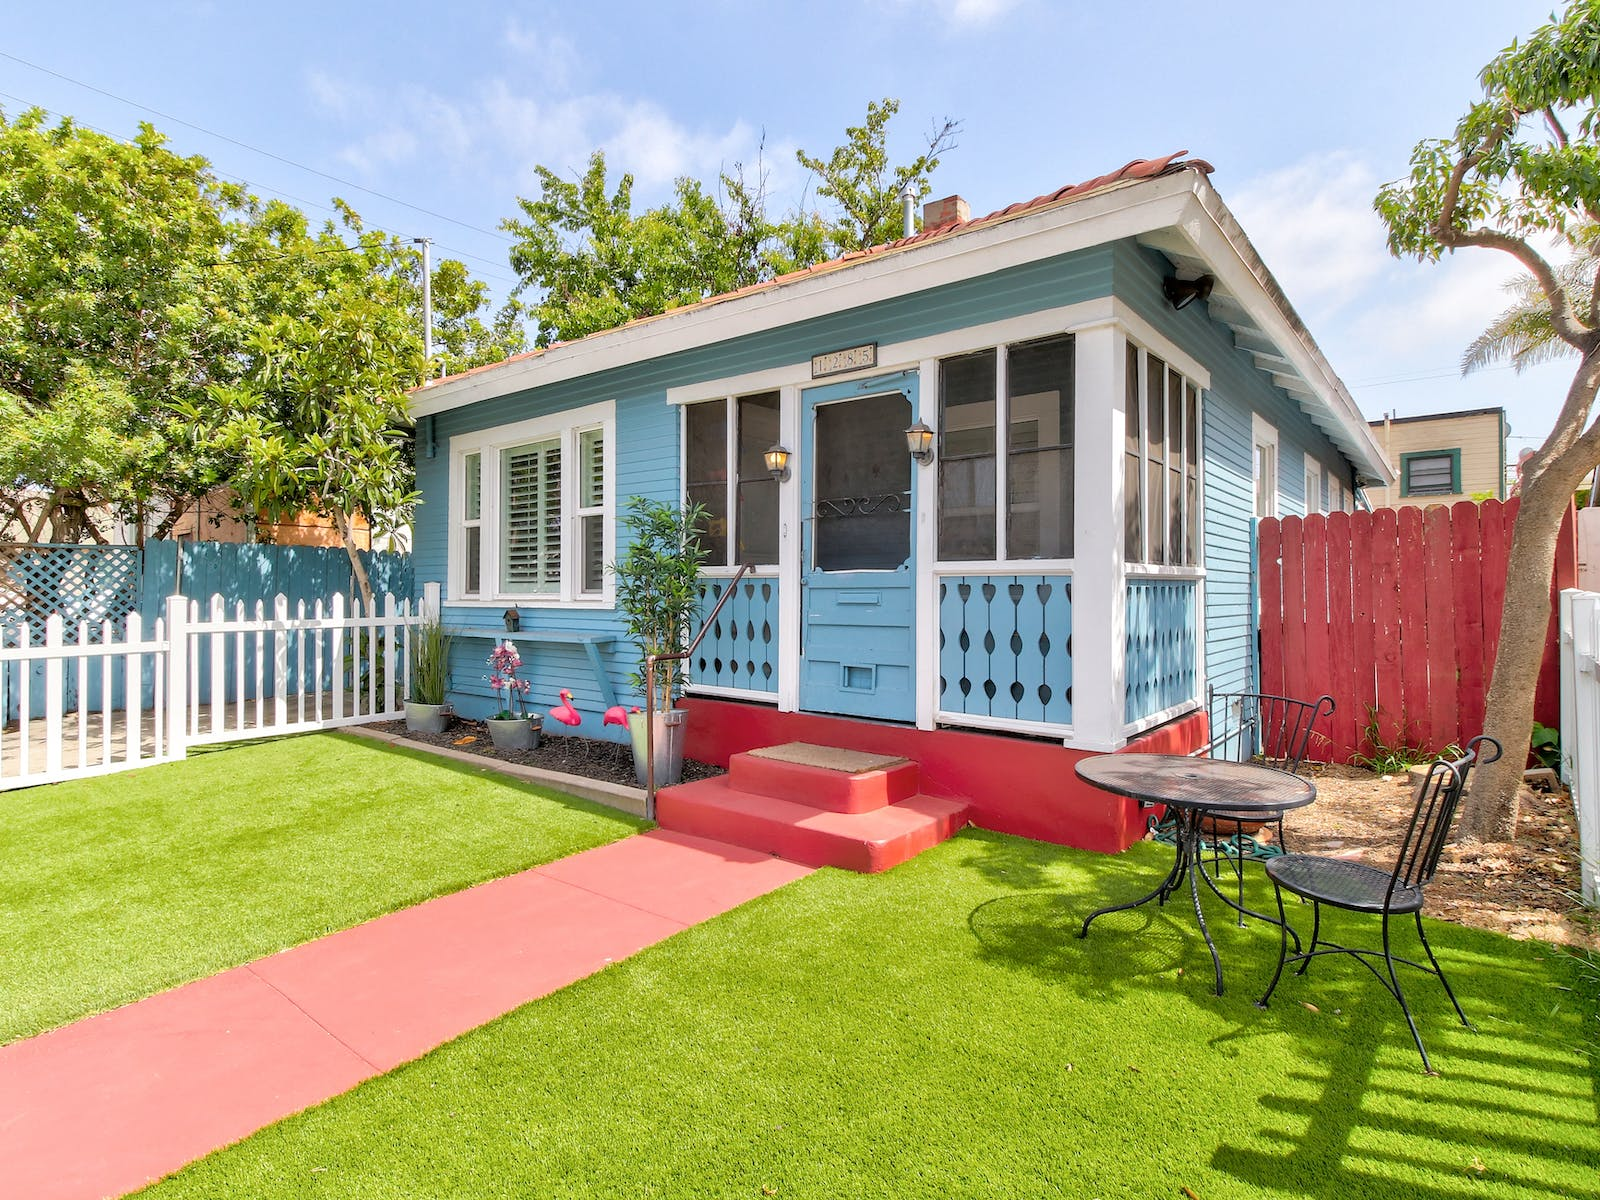 Blue and red vacation cottage located in San Diego, CA